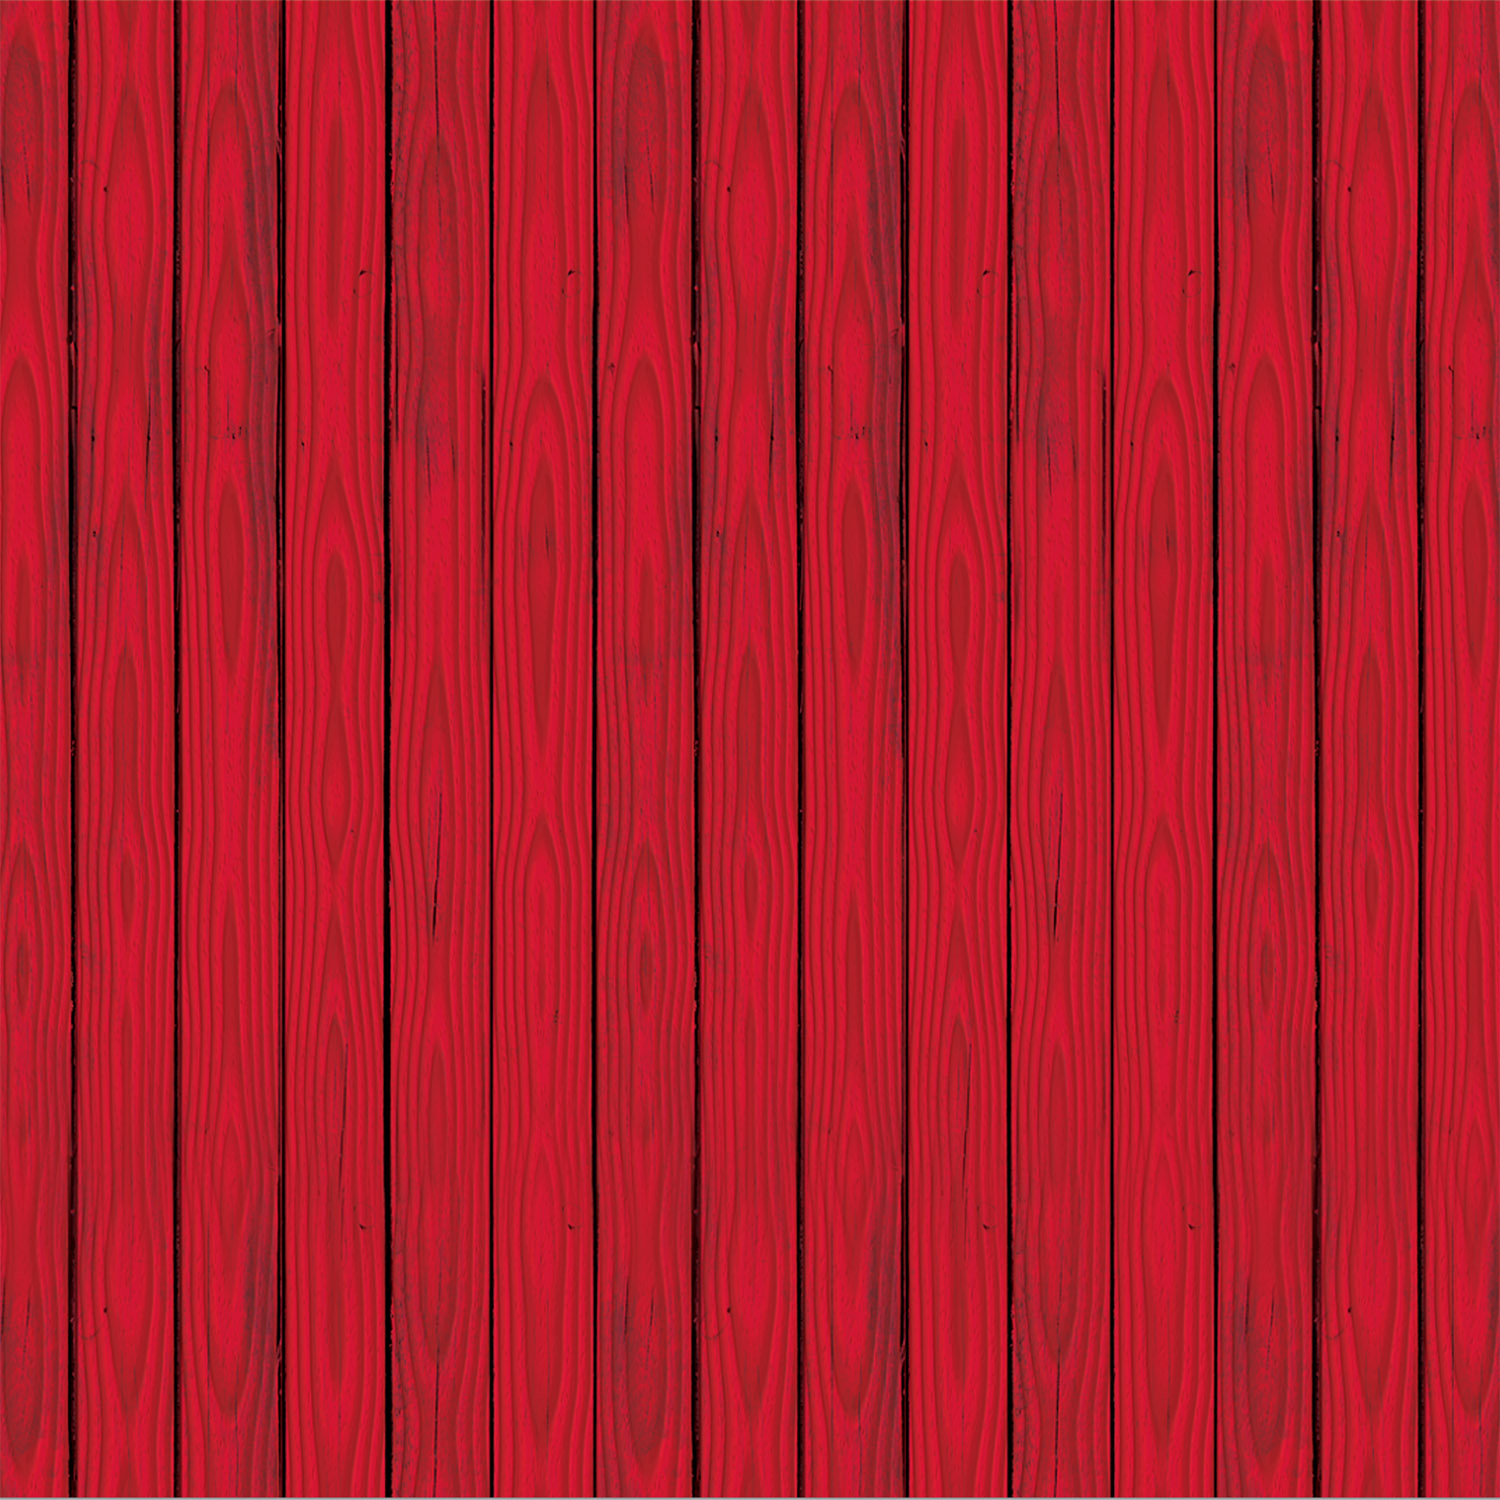 Wallpaper Fall Farmhouse Red Barn Siding Backdrop 30 Ft Party Supplies Canada